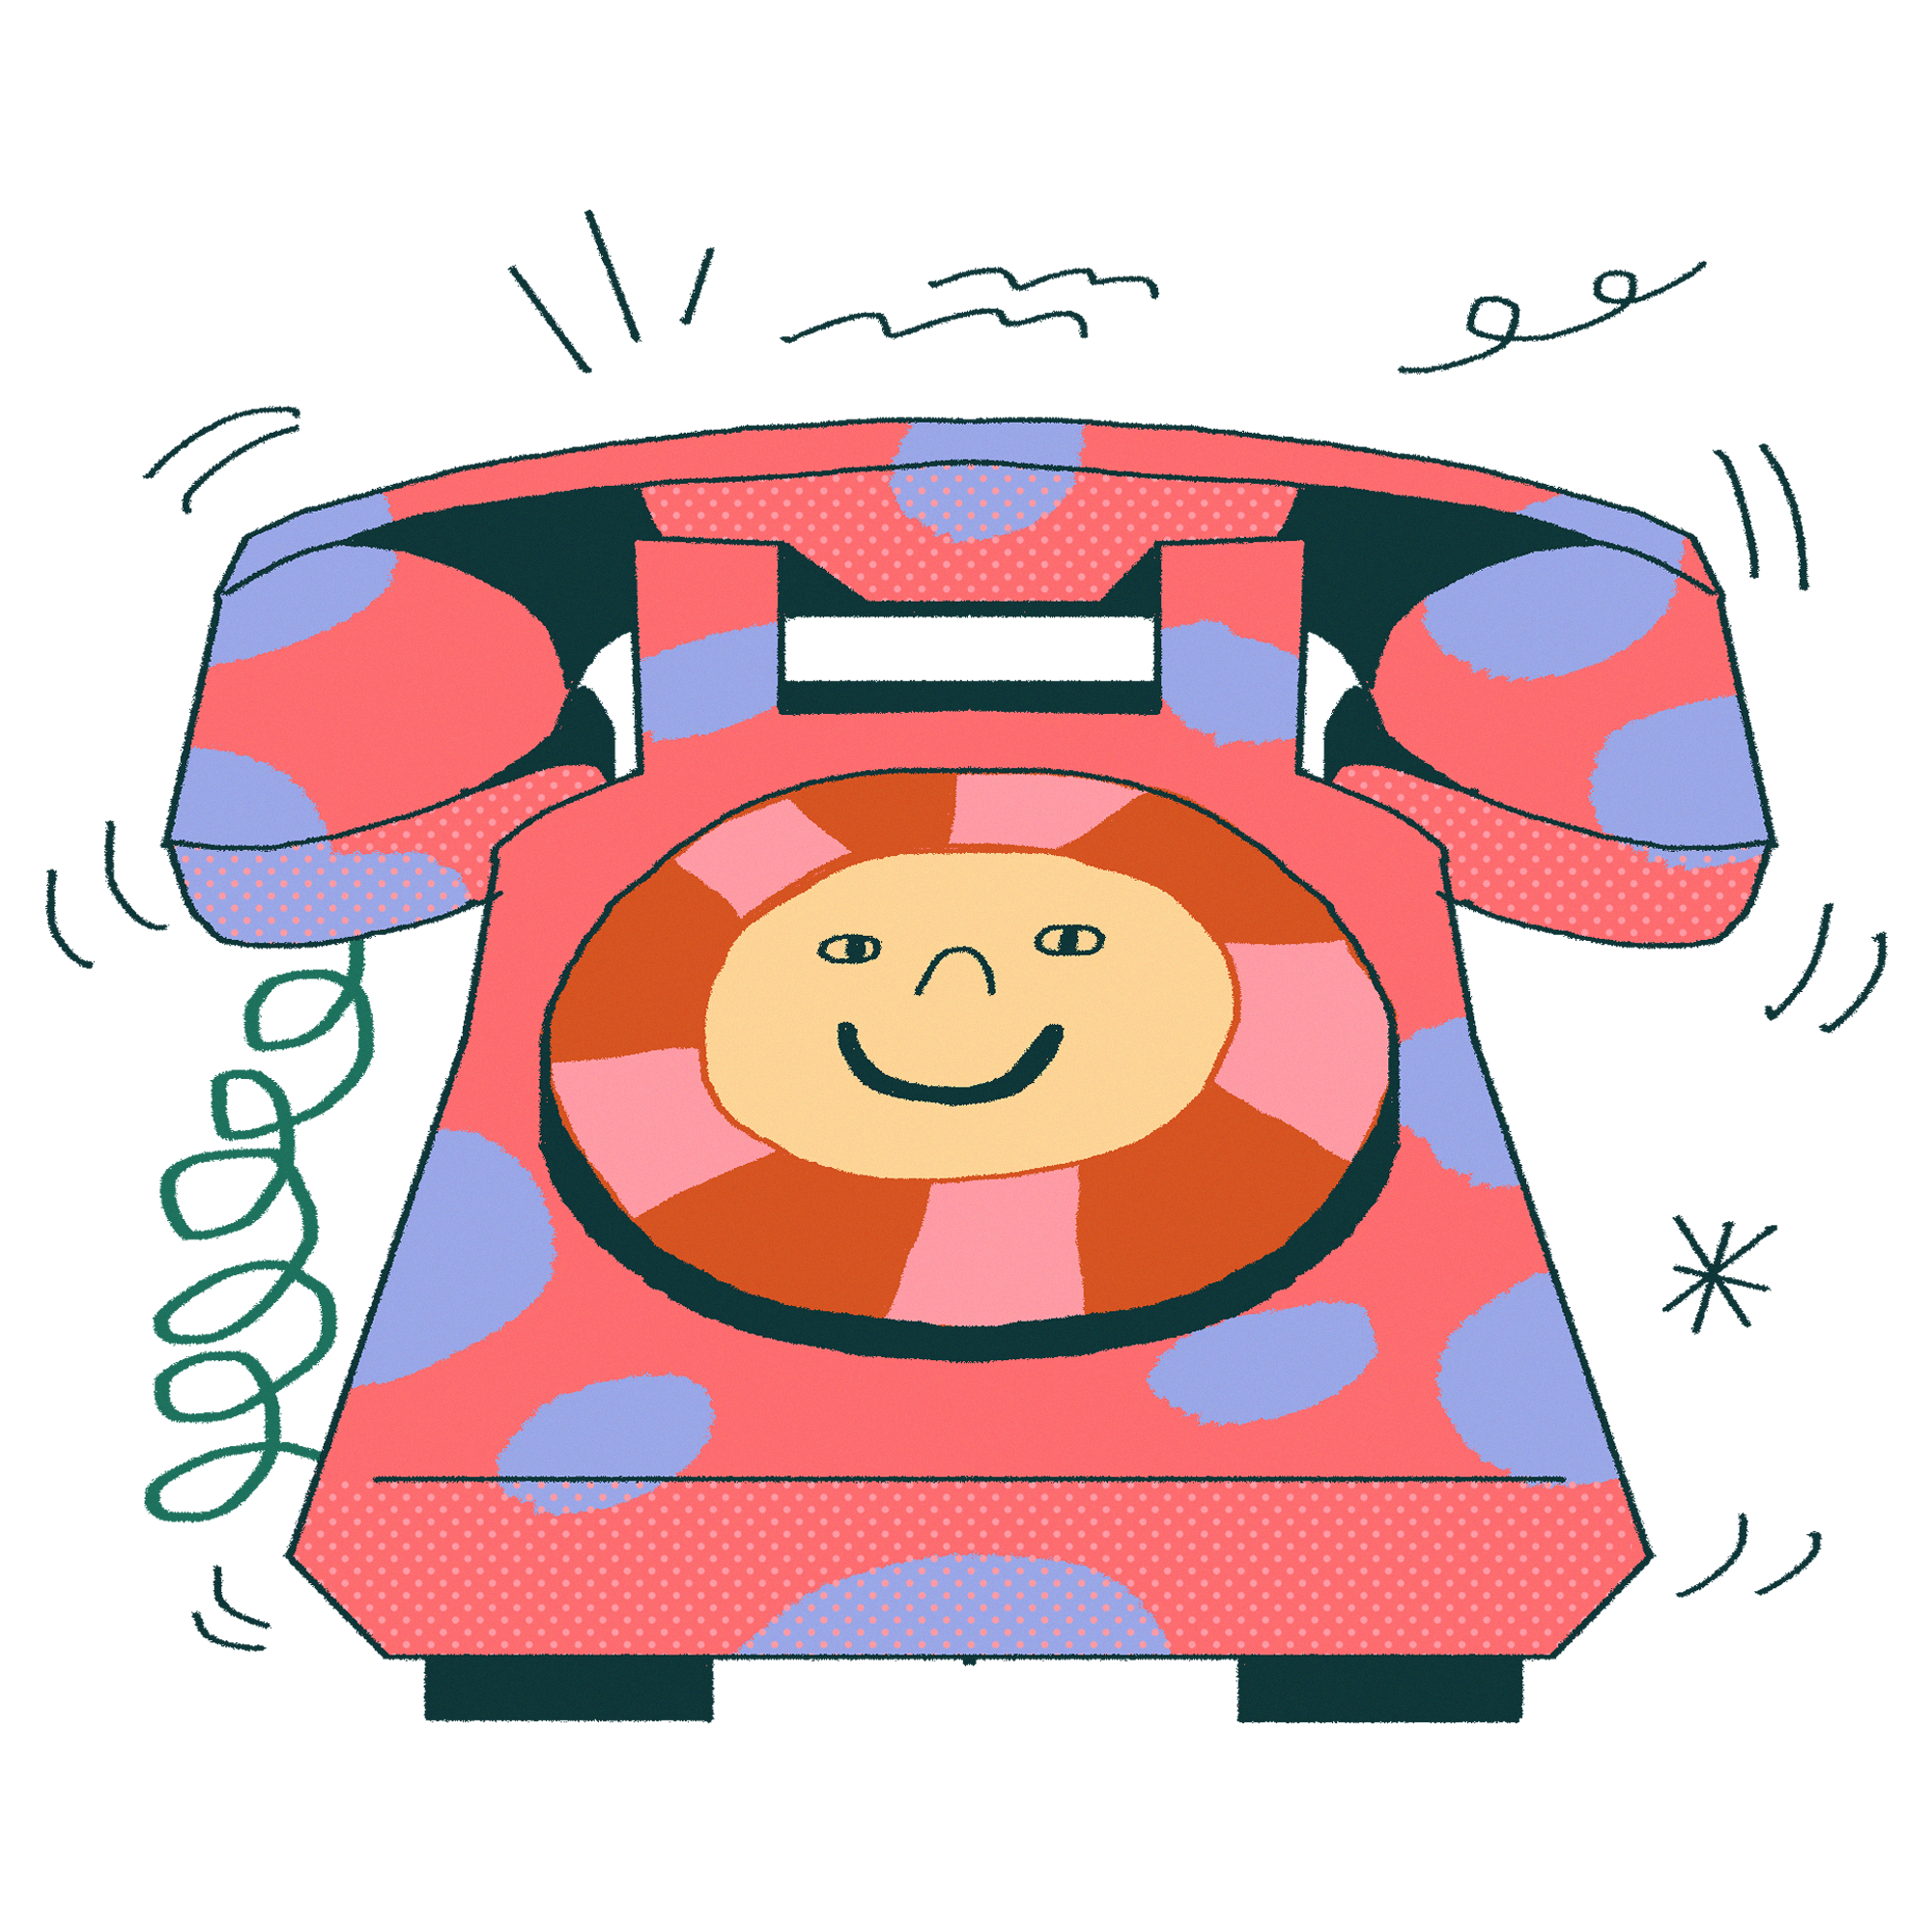 Illustration of a pink phone with blue spots